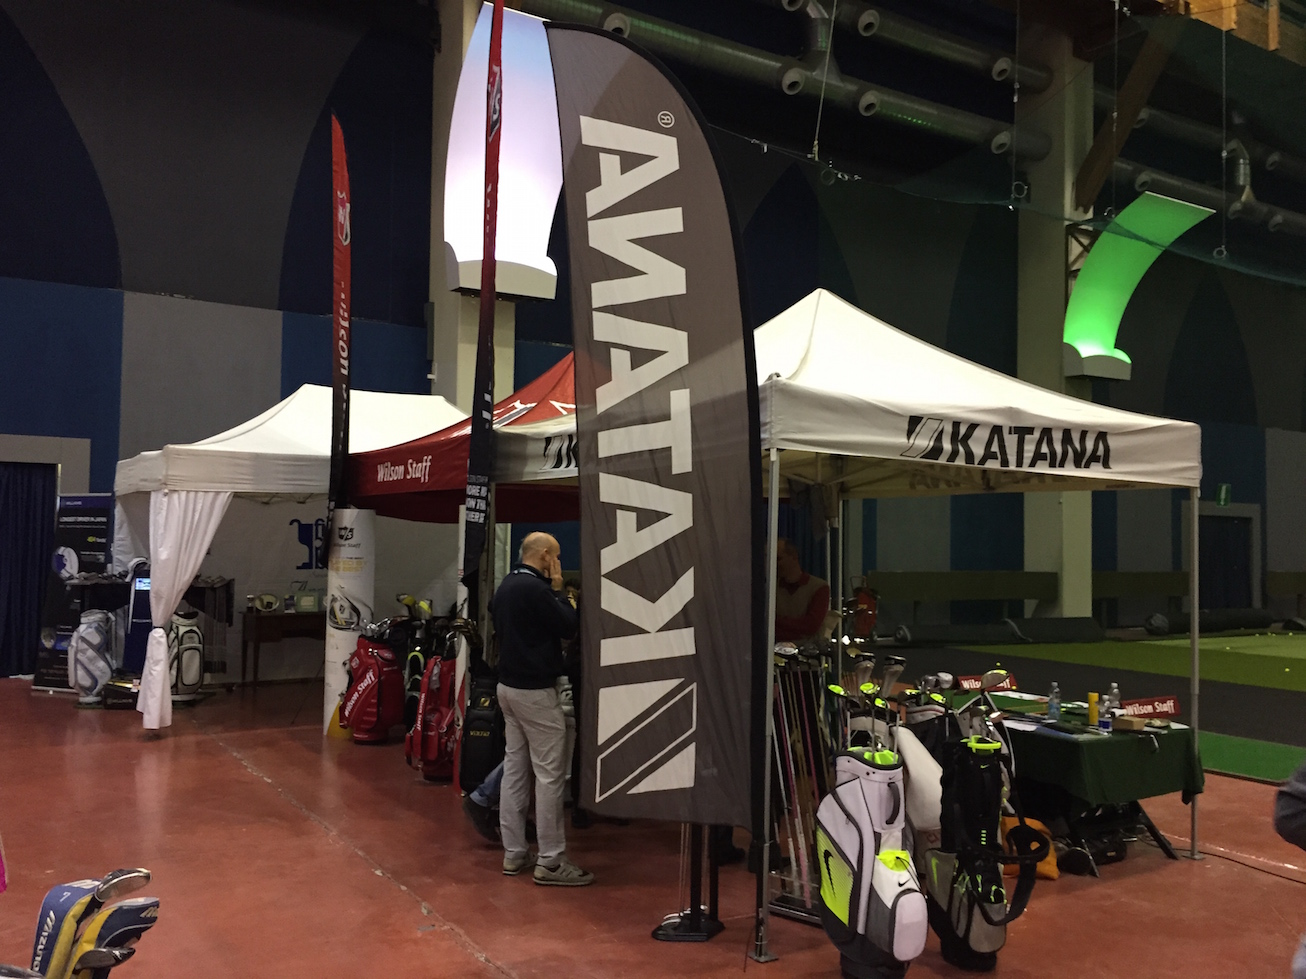 Fiera del Golf Parma 2015 le foto ed i video di Italian Golf Show e le prove dei materiali40 - Fiera del Golf Parma: le foto ed i video di Italian Golf Show